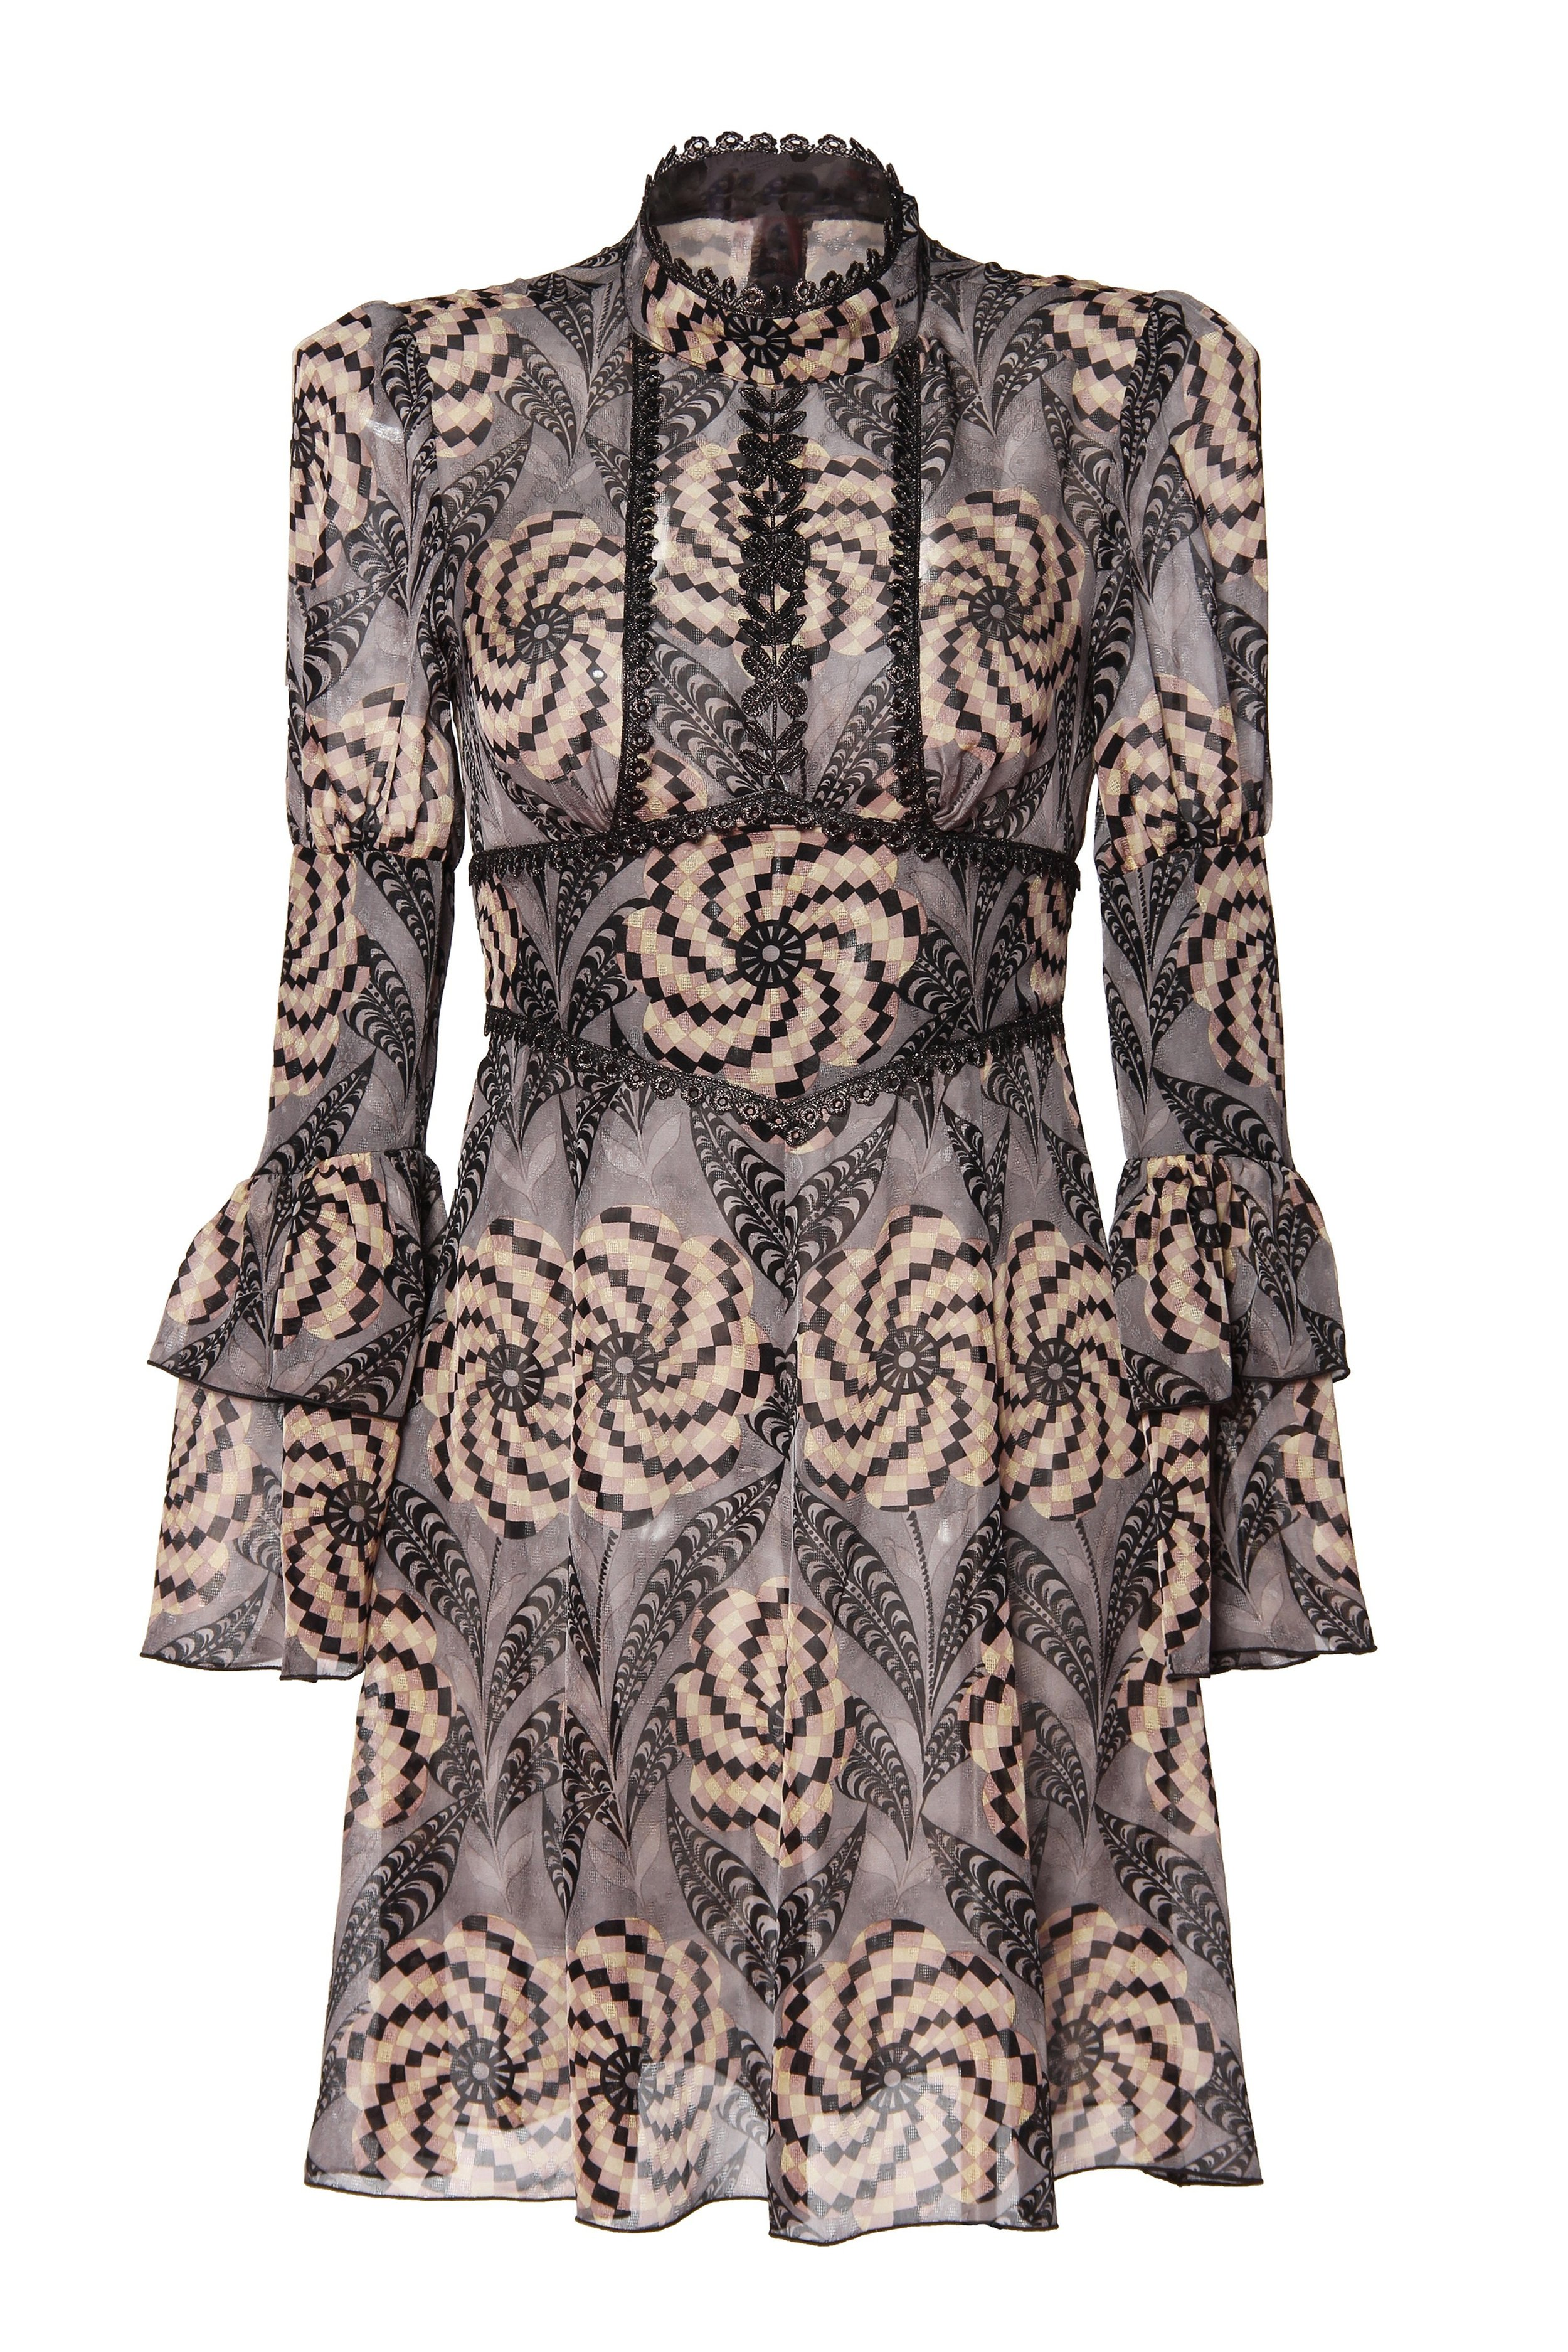 Shades of Psychedelia High Neck Dress $735